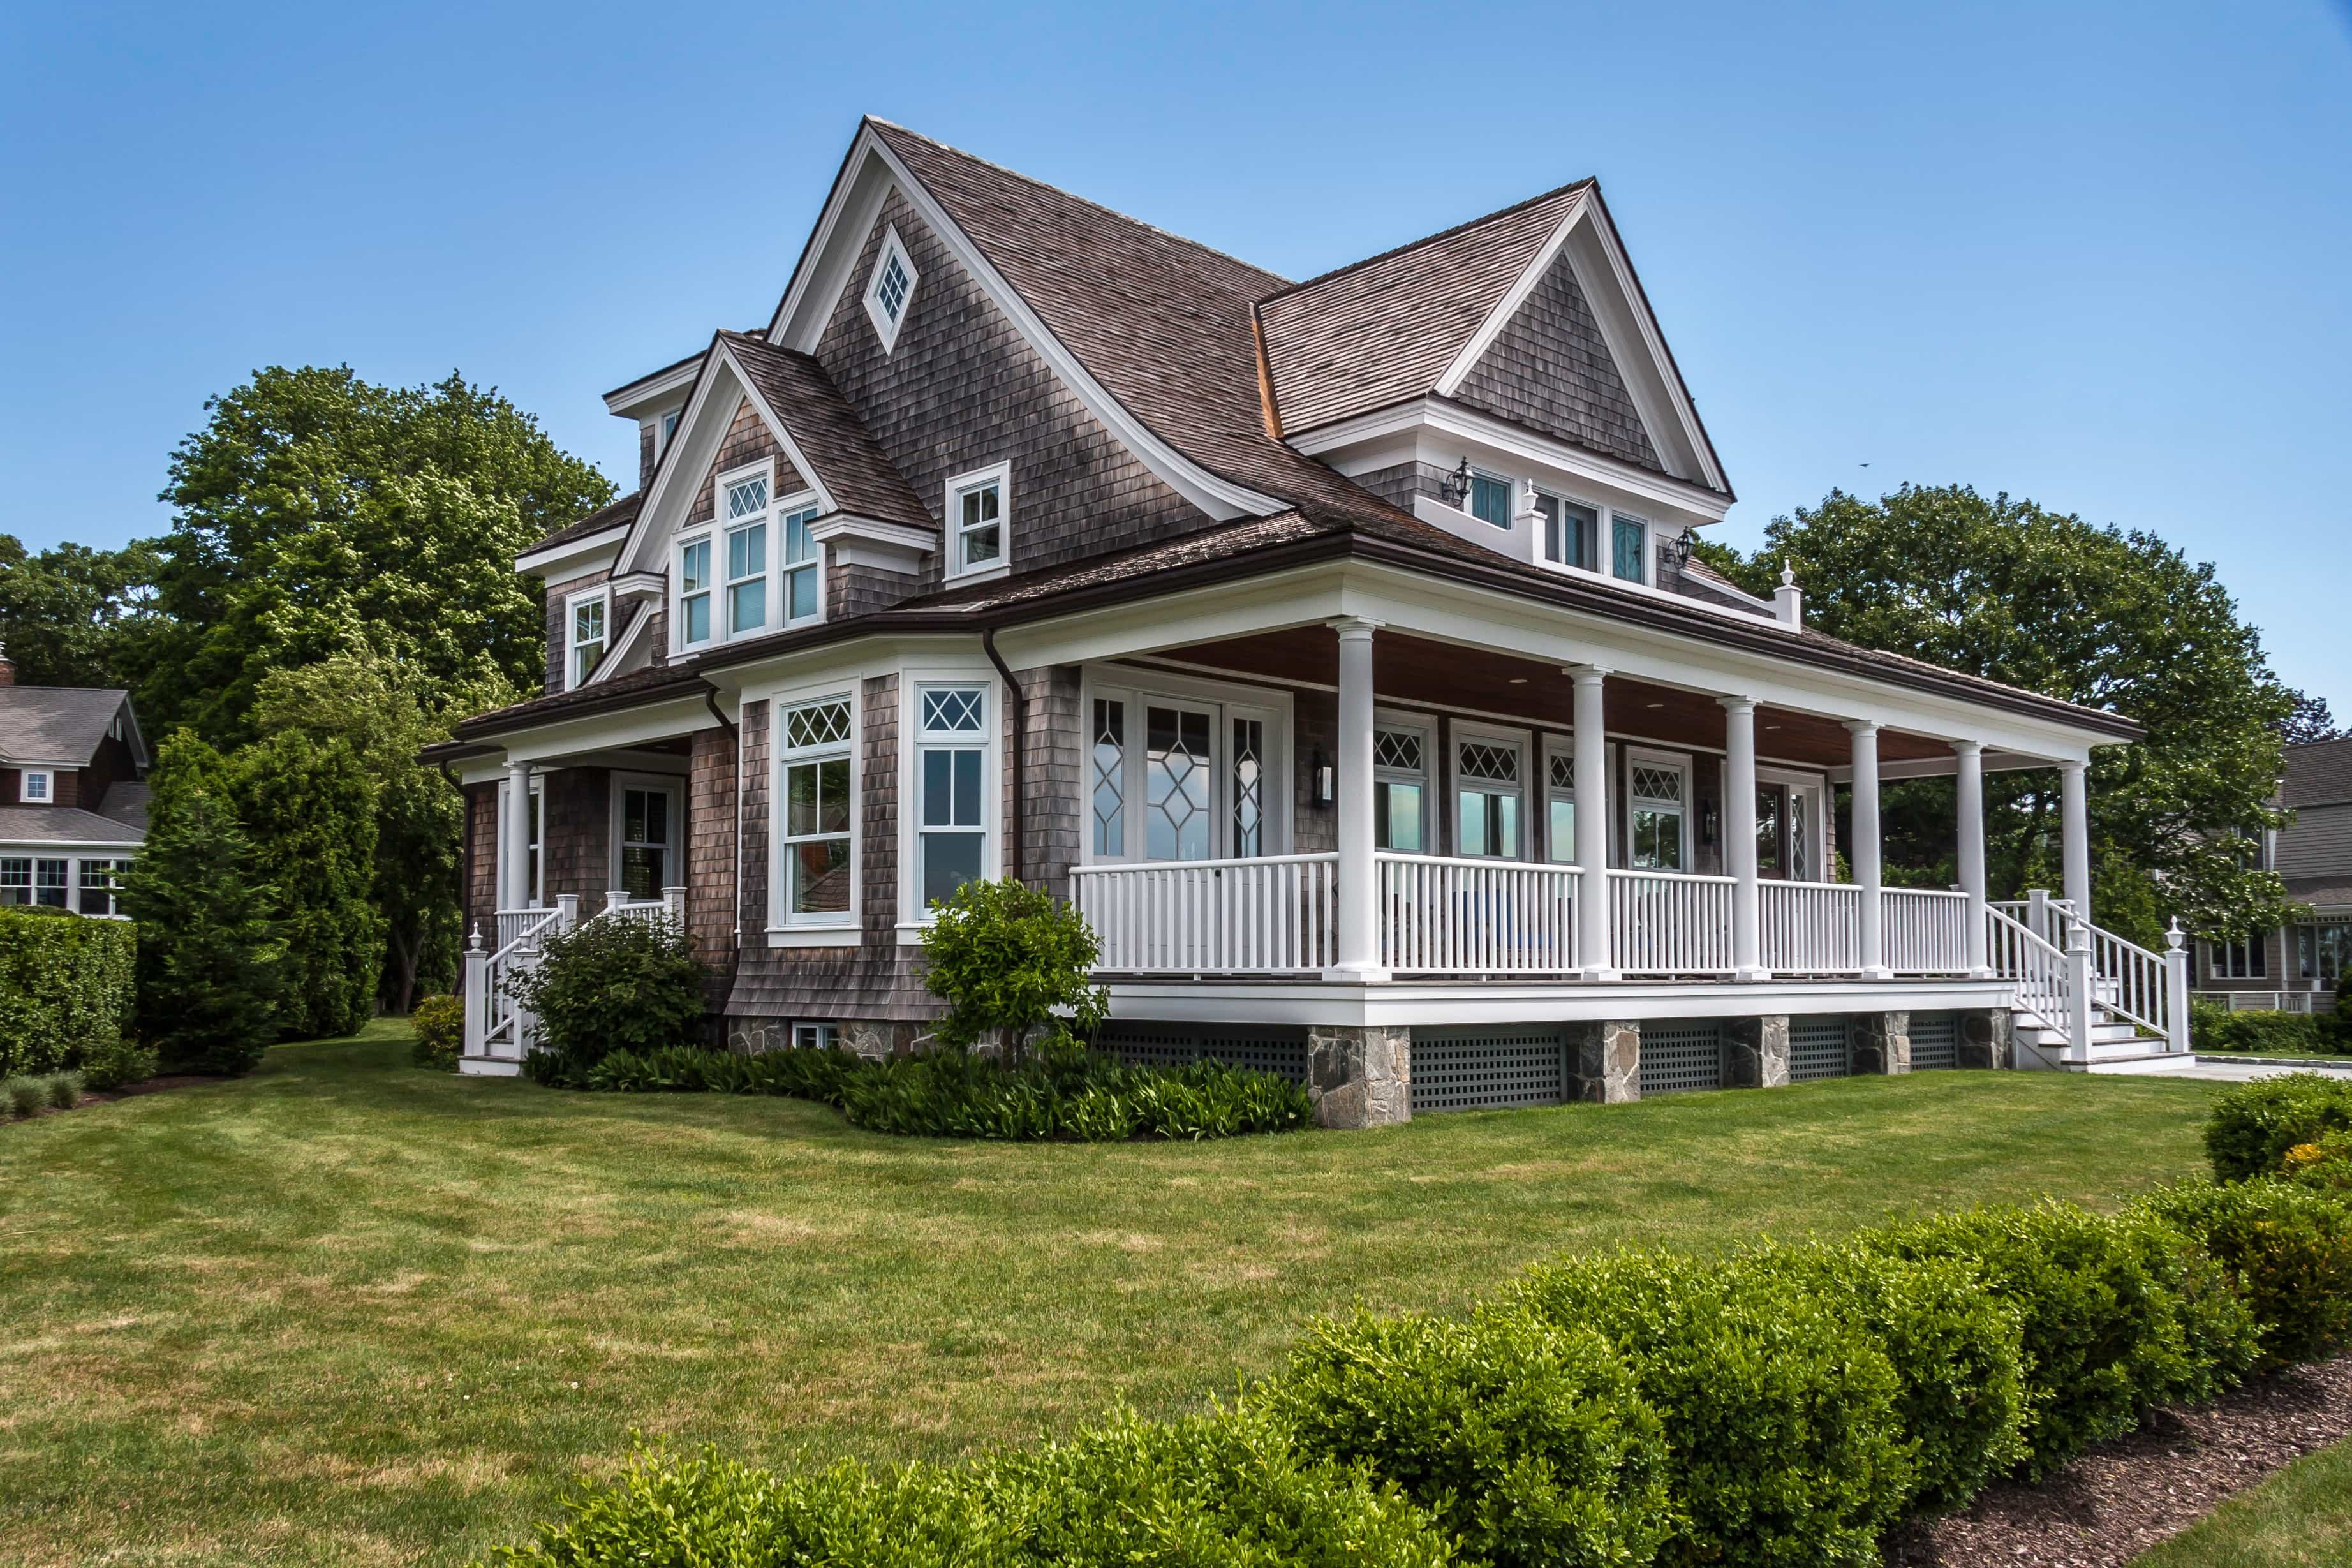 Featured Image of Wooden Shingles And Diamond Paned Windows Exterior